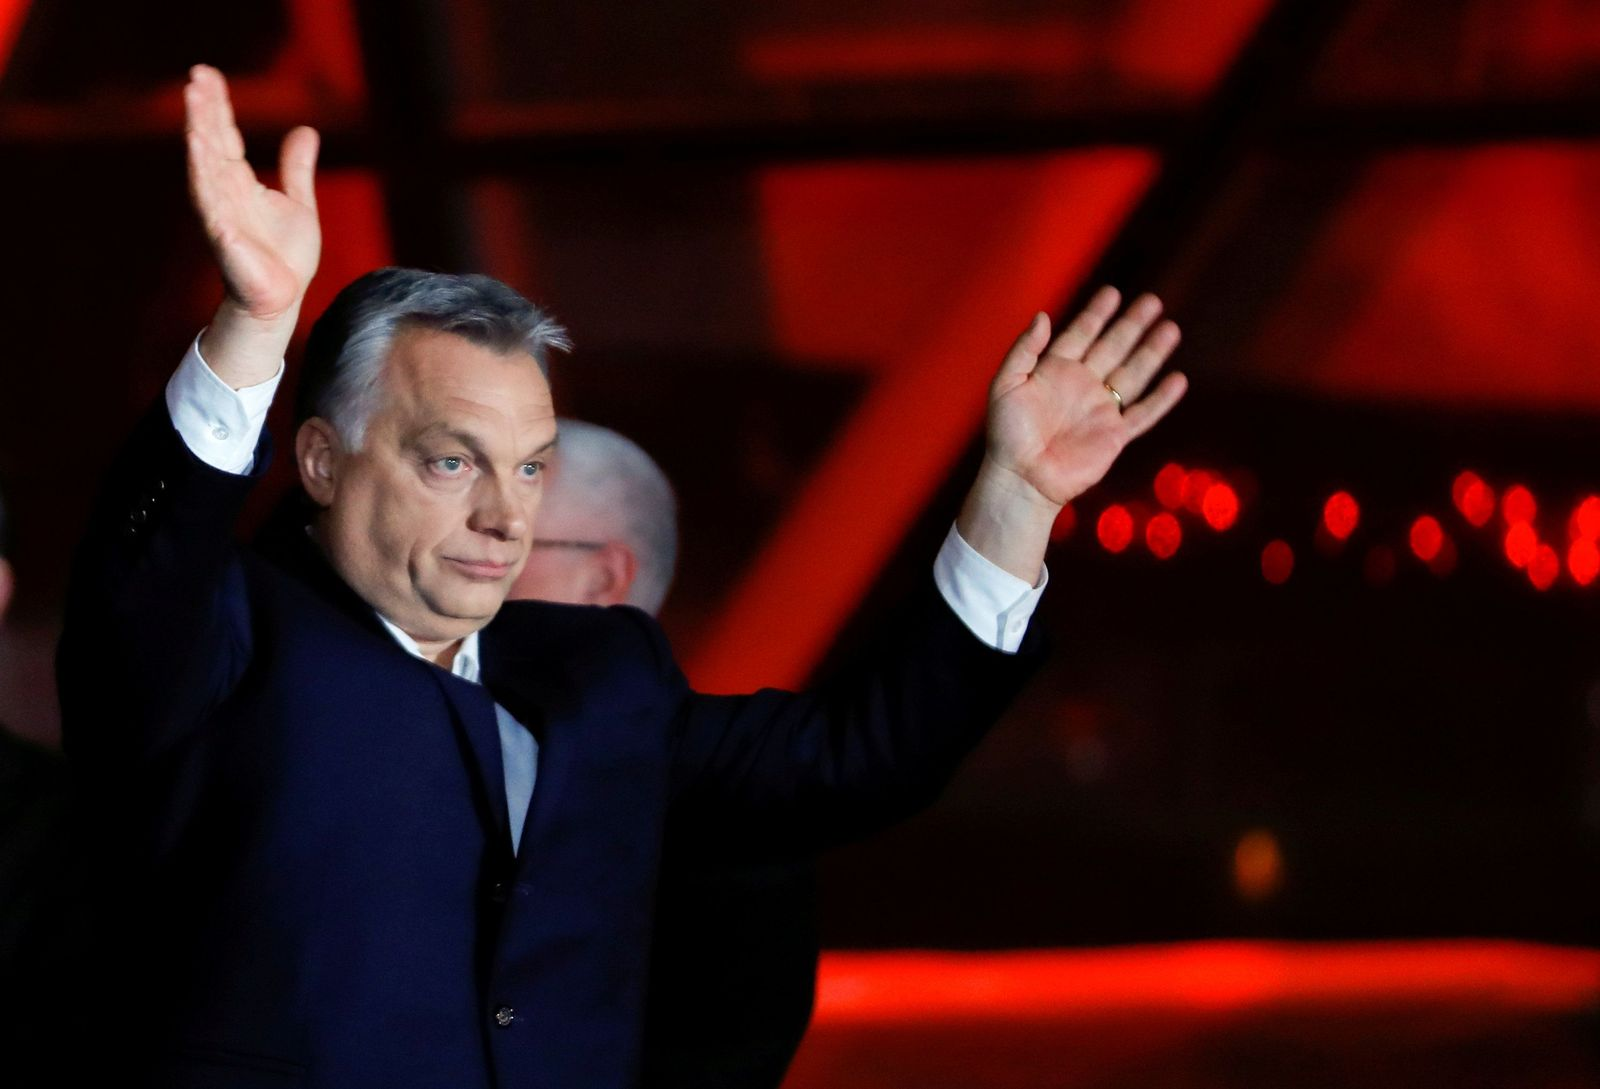 HUNGARY-ELECTION/SUPPORTERS-ORBAN